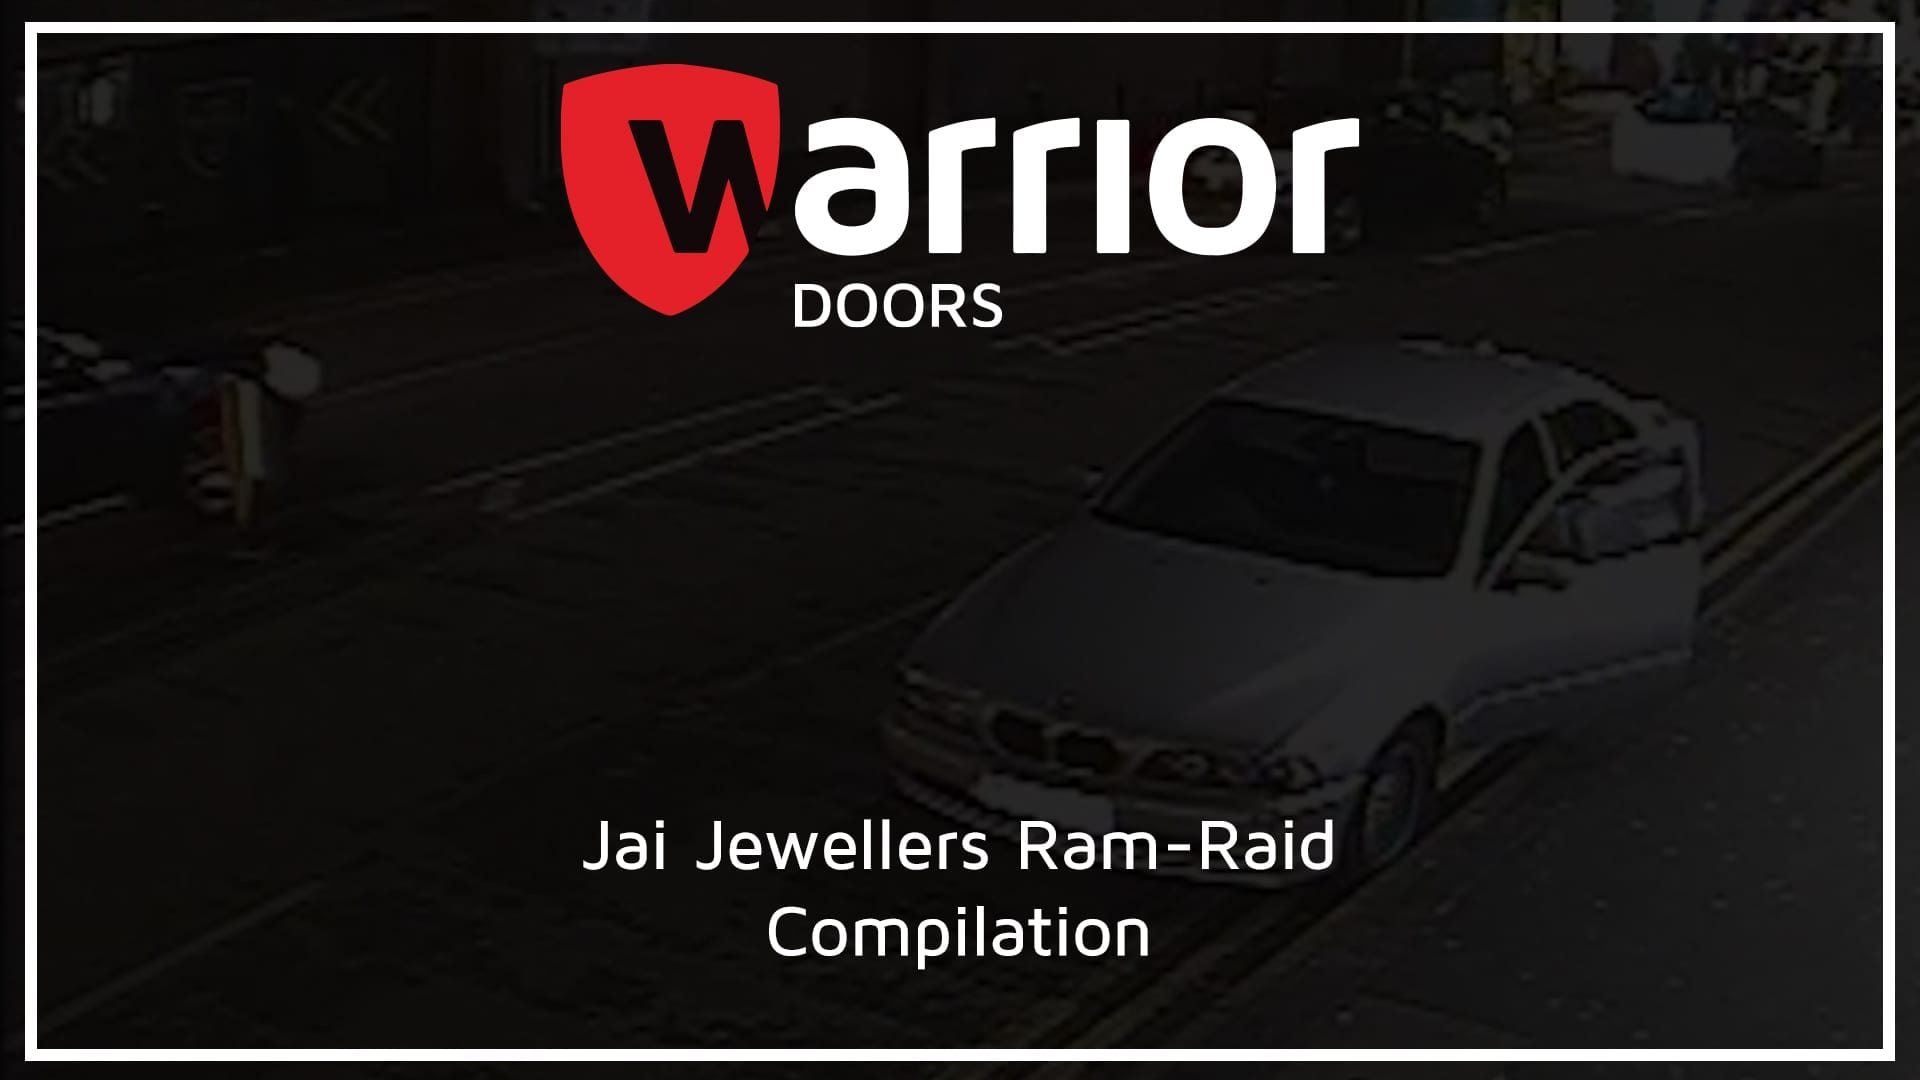 """BMW with an open door with Warrior Doors logo and text reading """"Jai Jewellers Ram-Raid Compilation"""""""